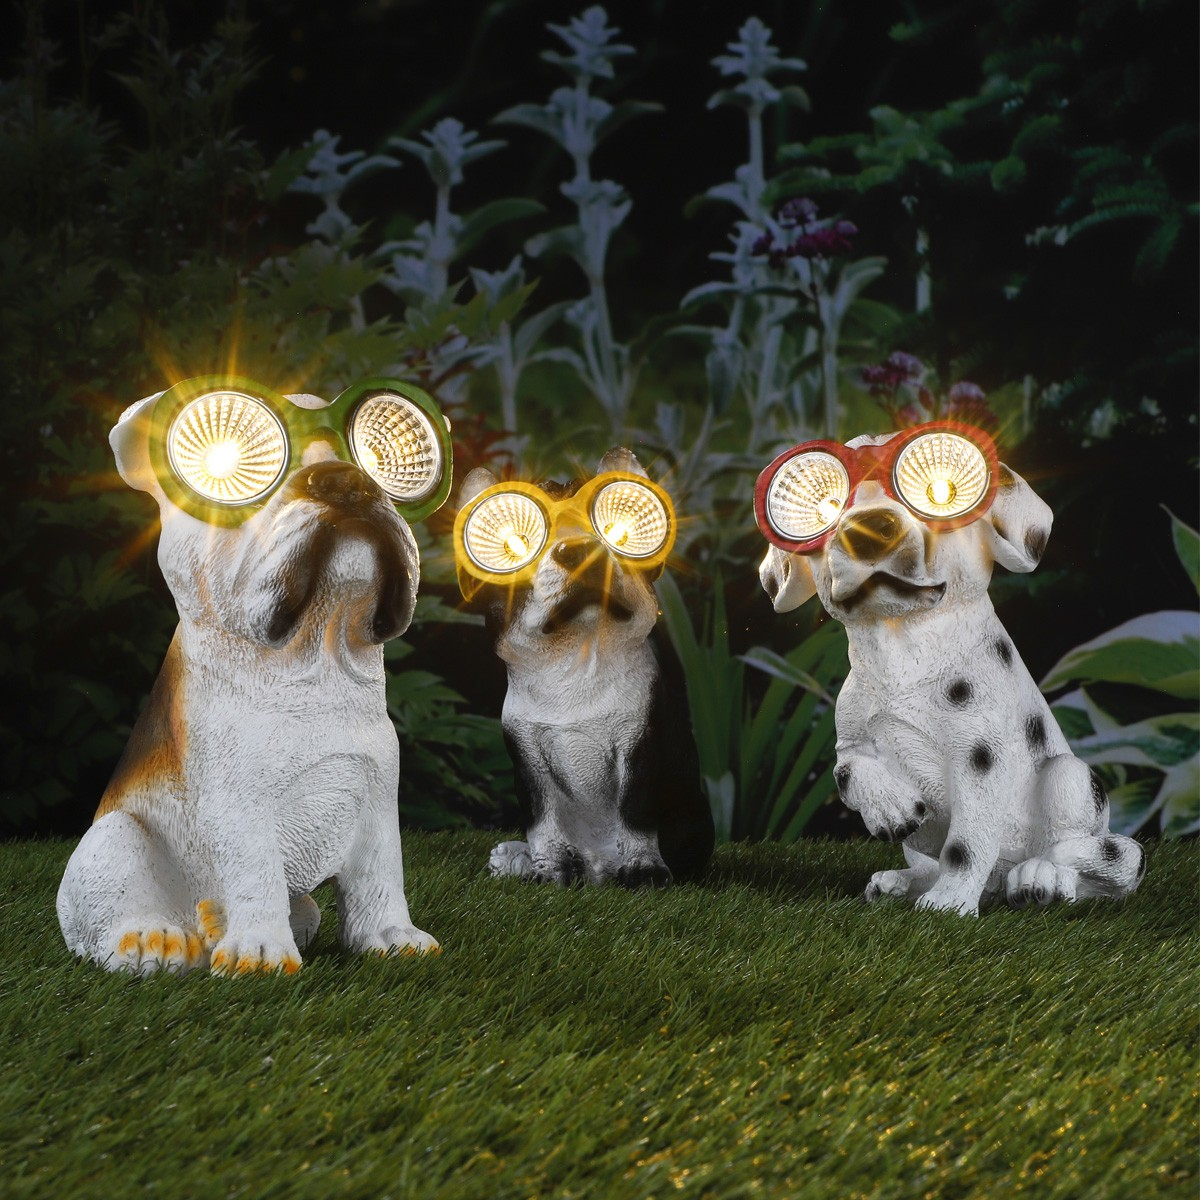 LED Solar Leuchte Hund Lucky - warmweisse LED - H: 20cm - Rote Brille